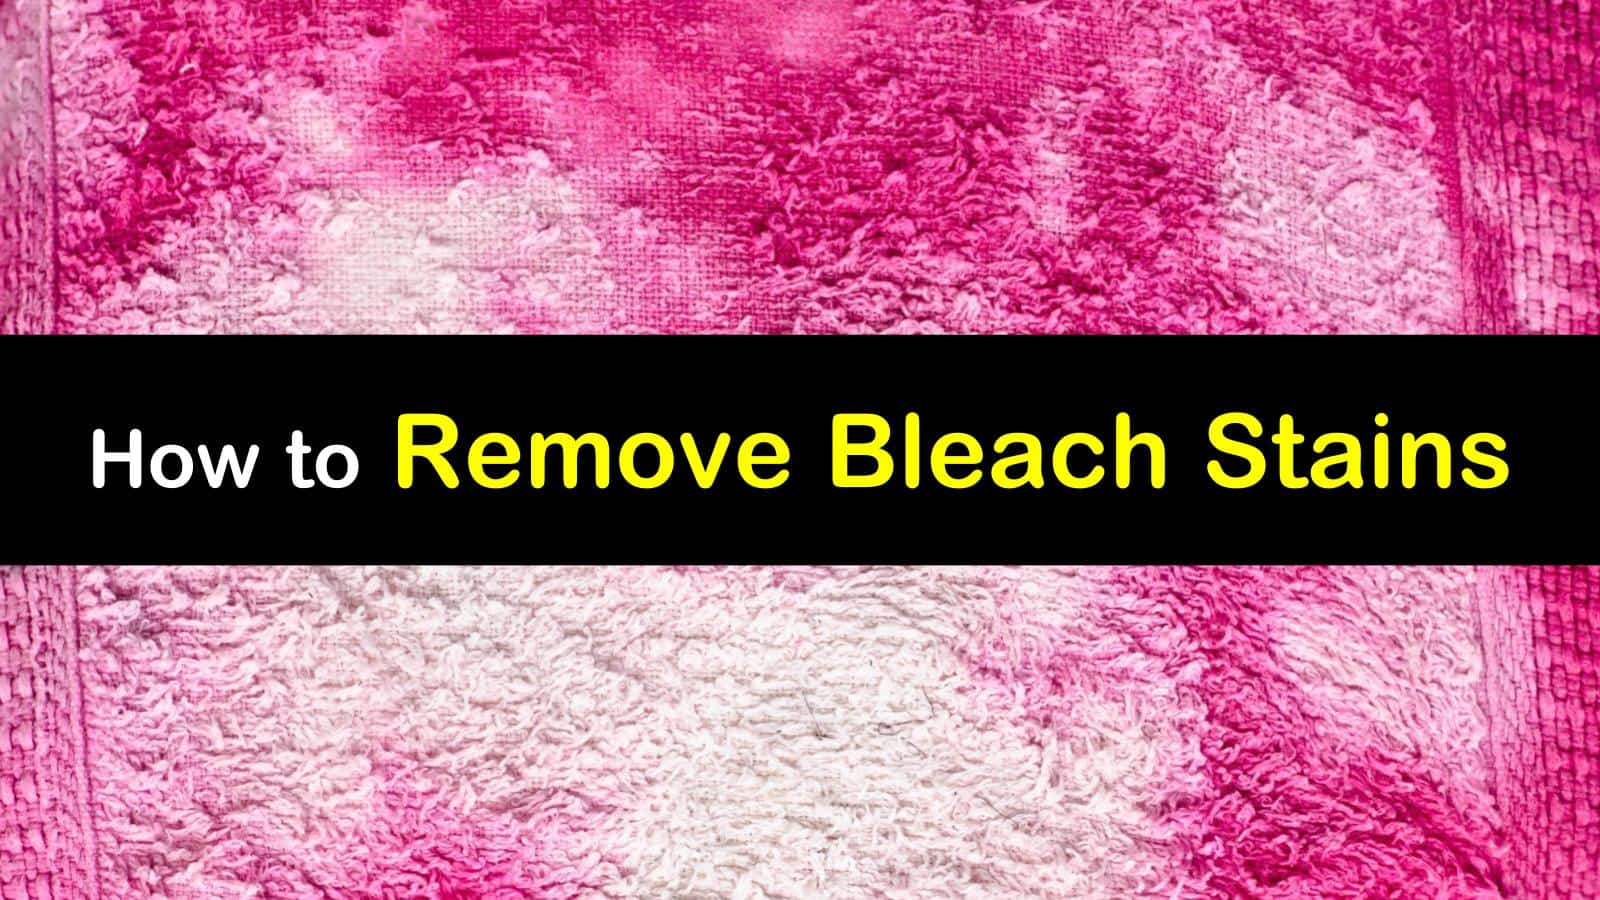 How to Remove Bleach Stains titleimg1